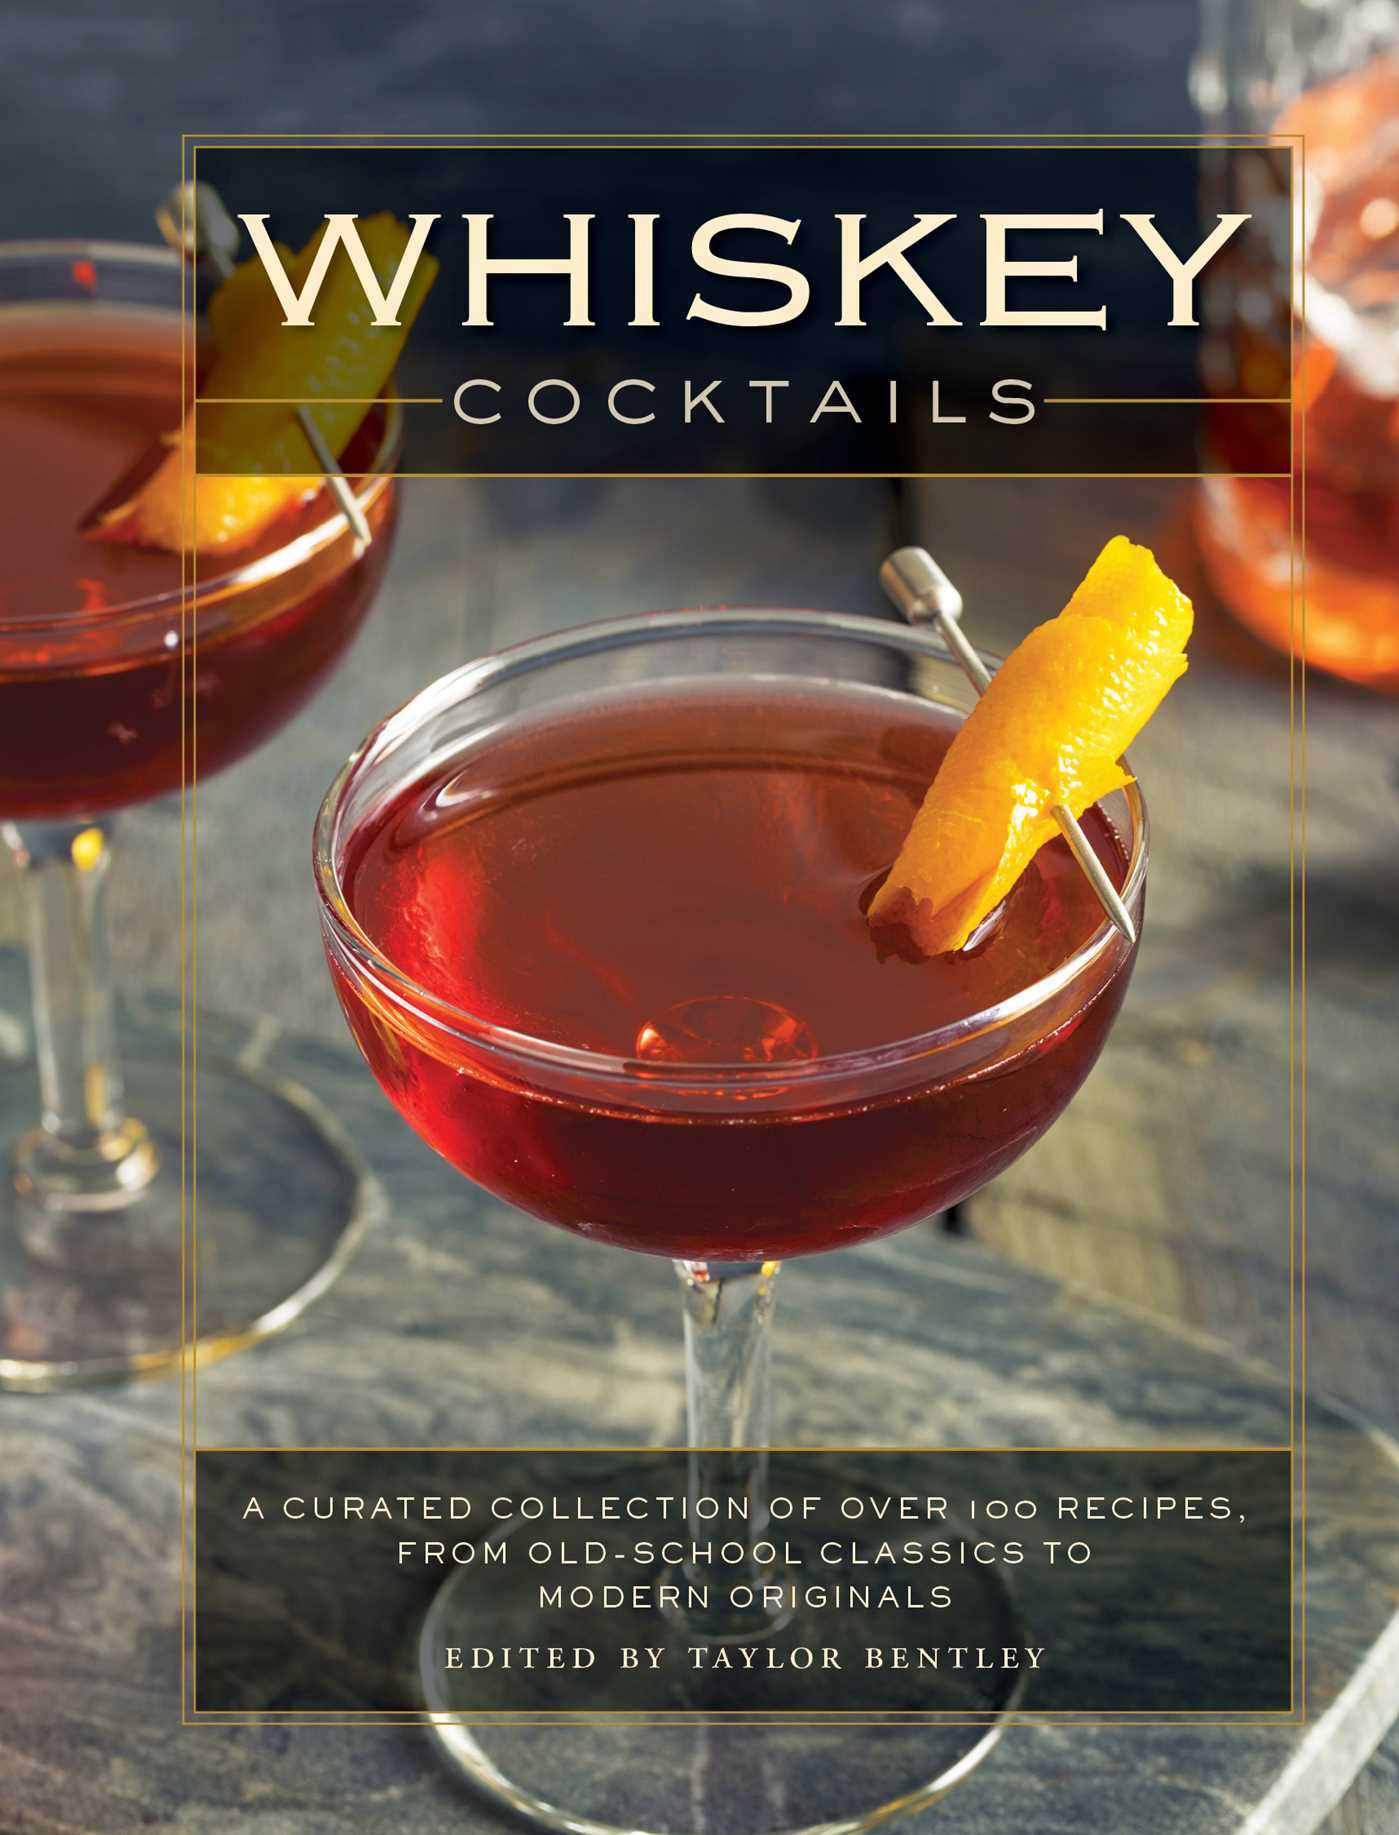 Whiskey cocktails 9781604337914 hr